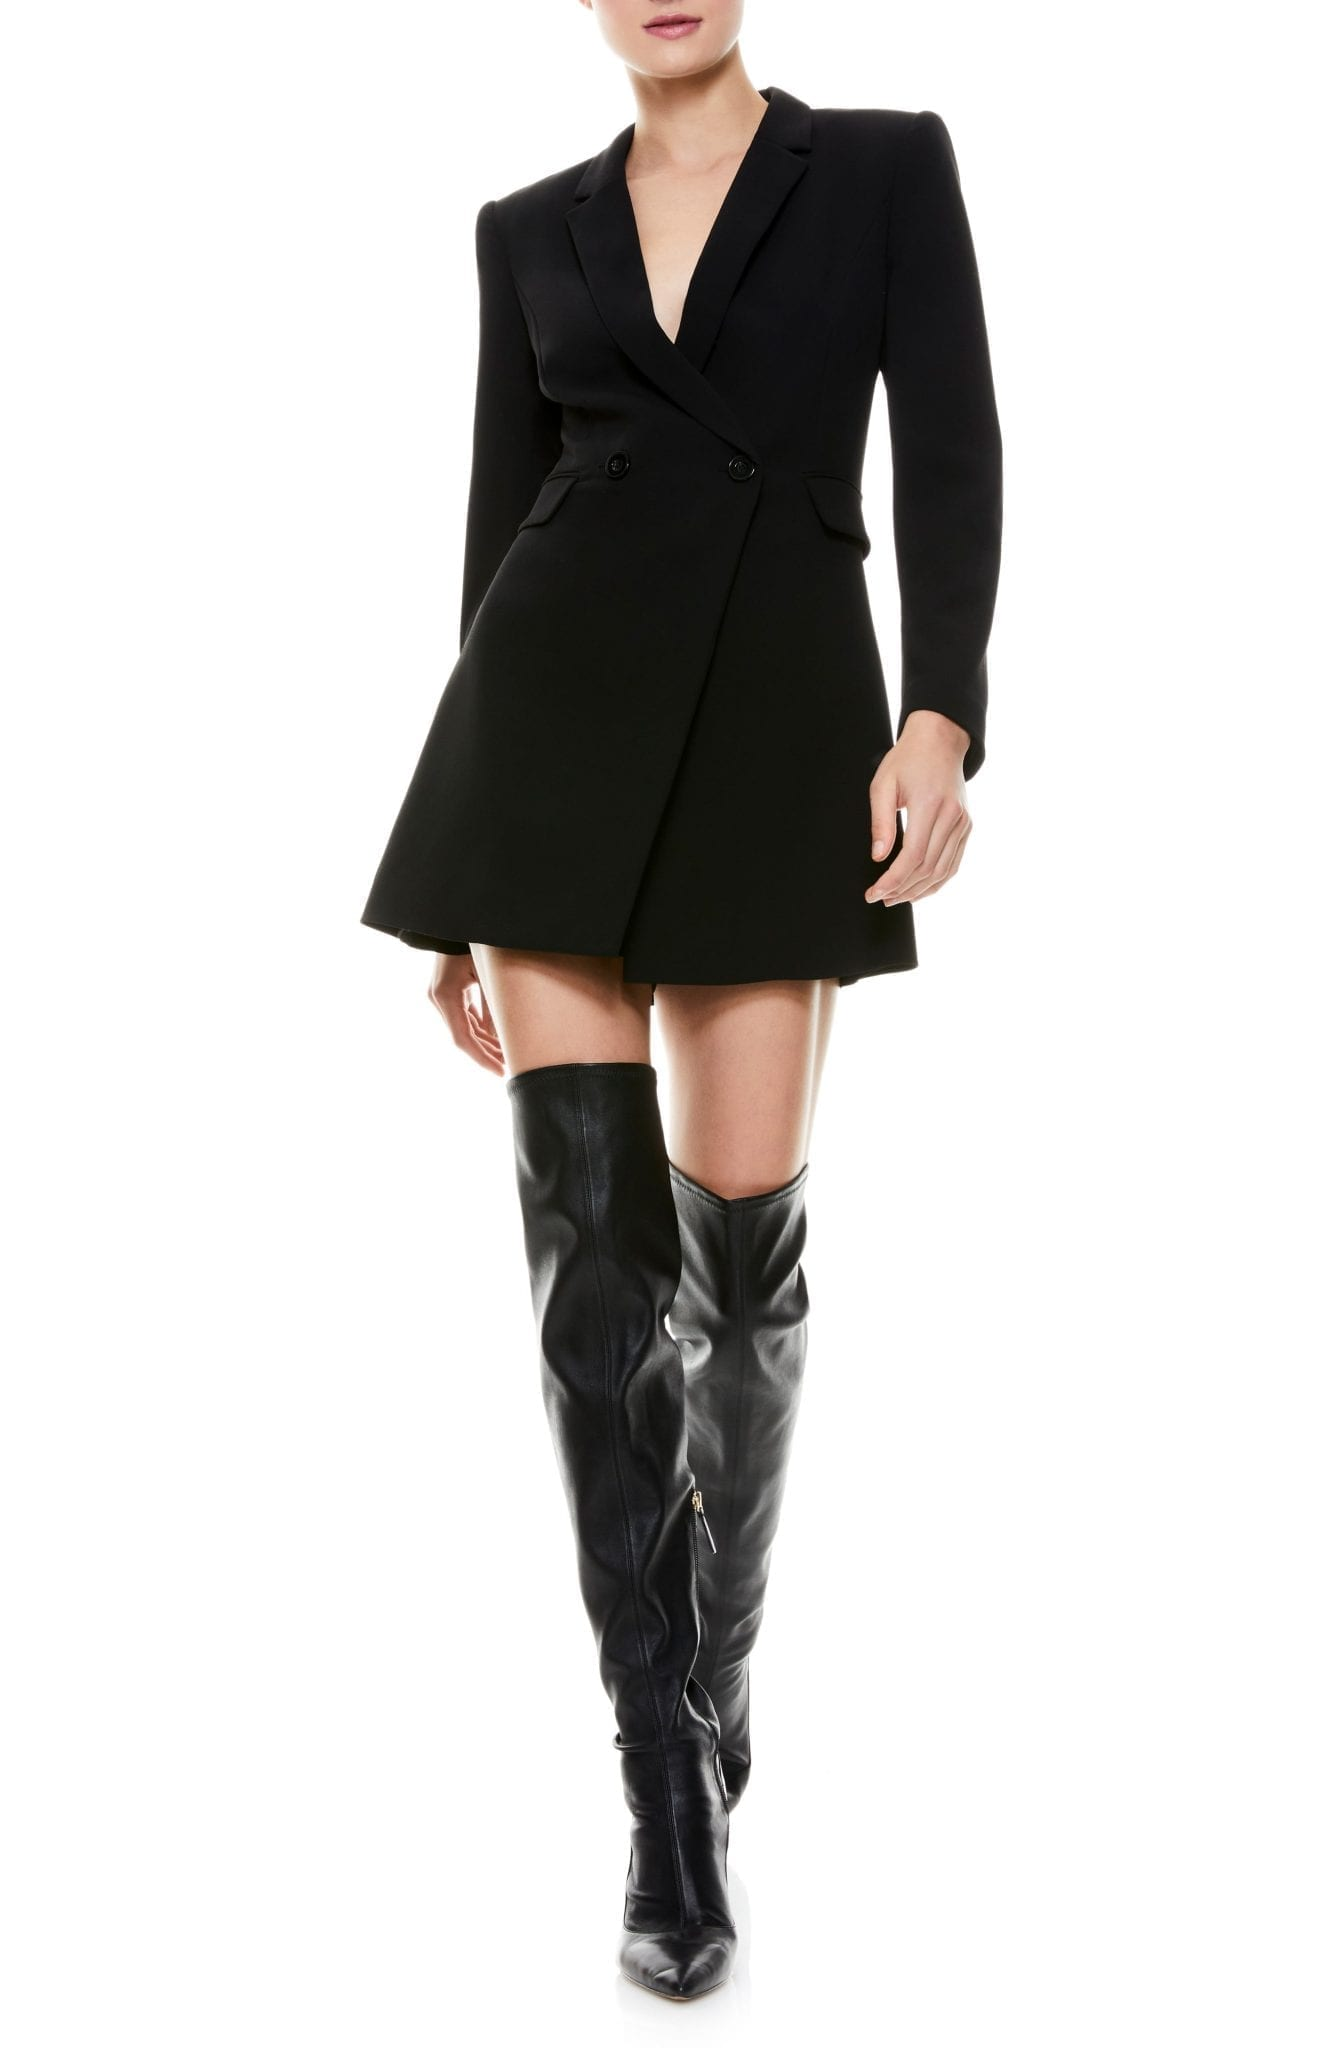 ALICE + OLIVIA Kyrie Tuxedo Long Sleeve Romper Dress